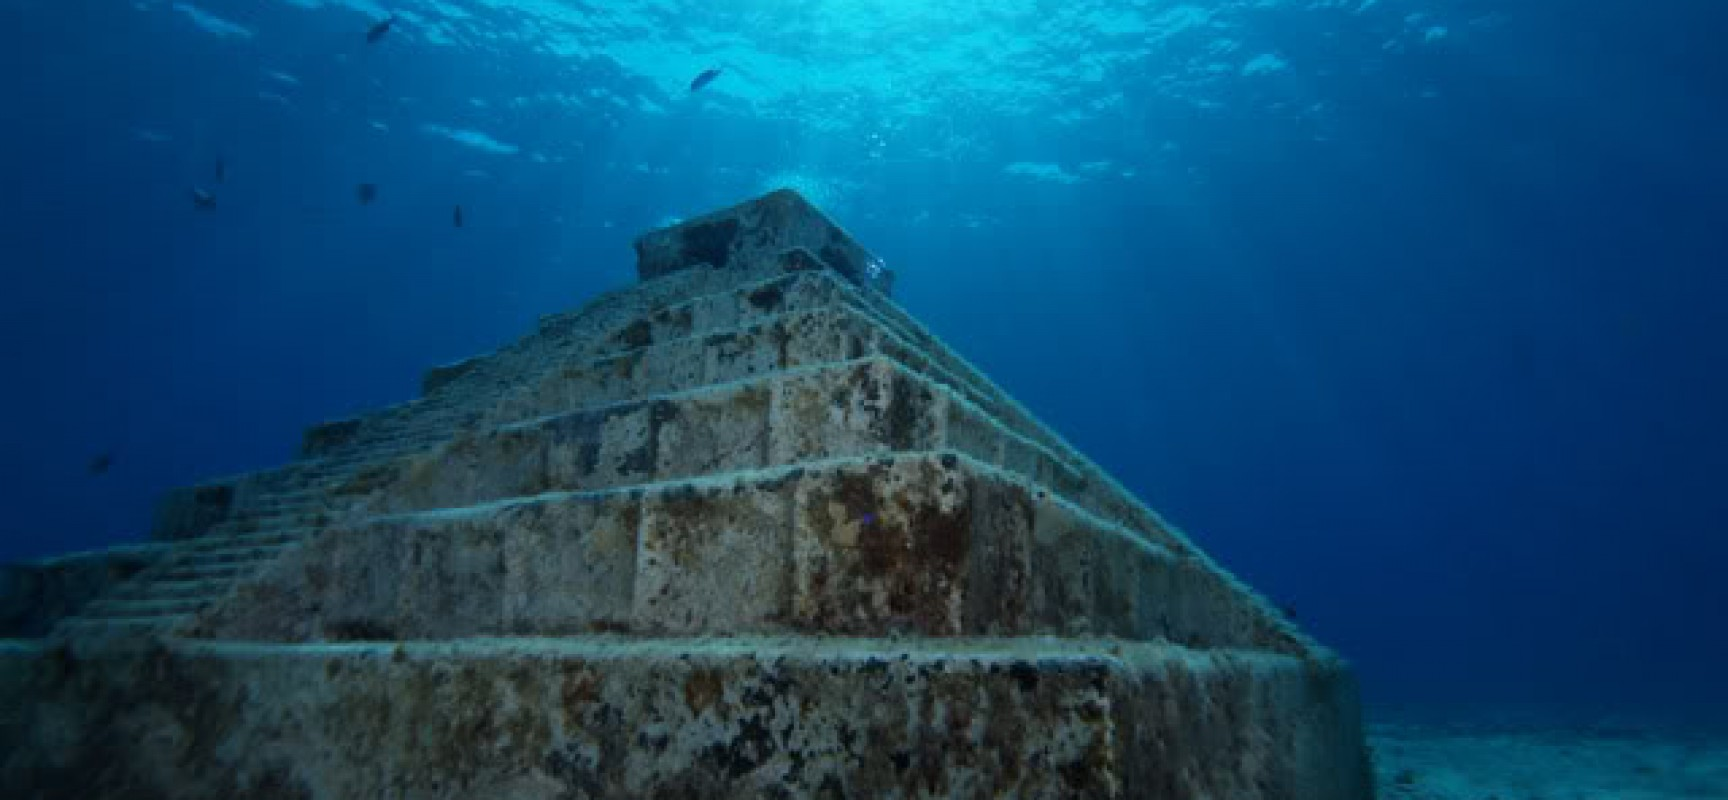 Yonaguni Pyramid near Japan, part of the massive 10,000-year-old monument complex